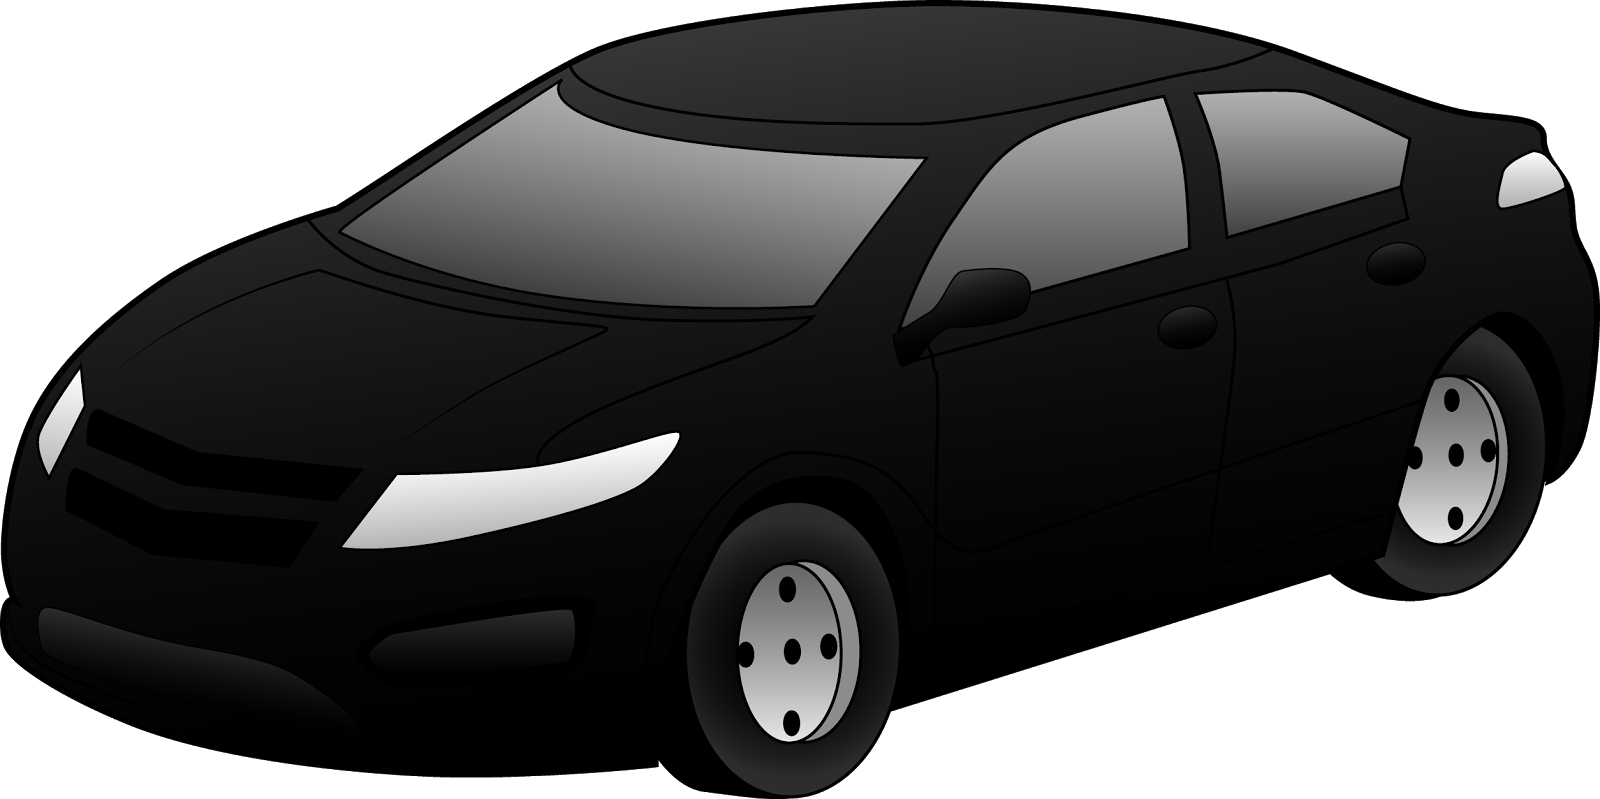 Free New Car Clipart Image.